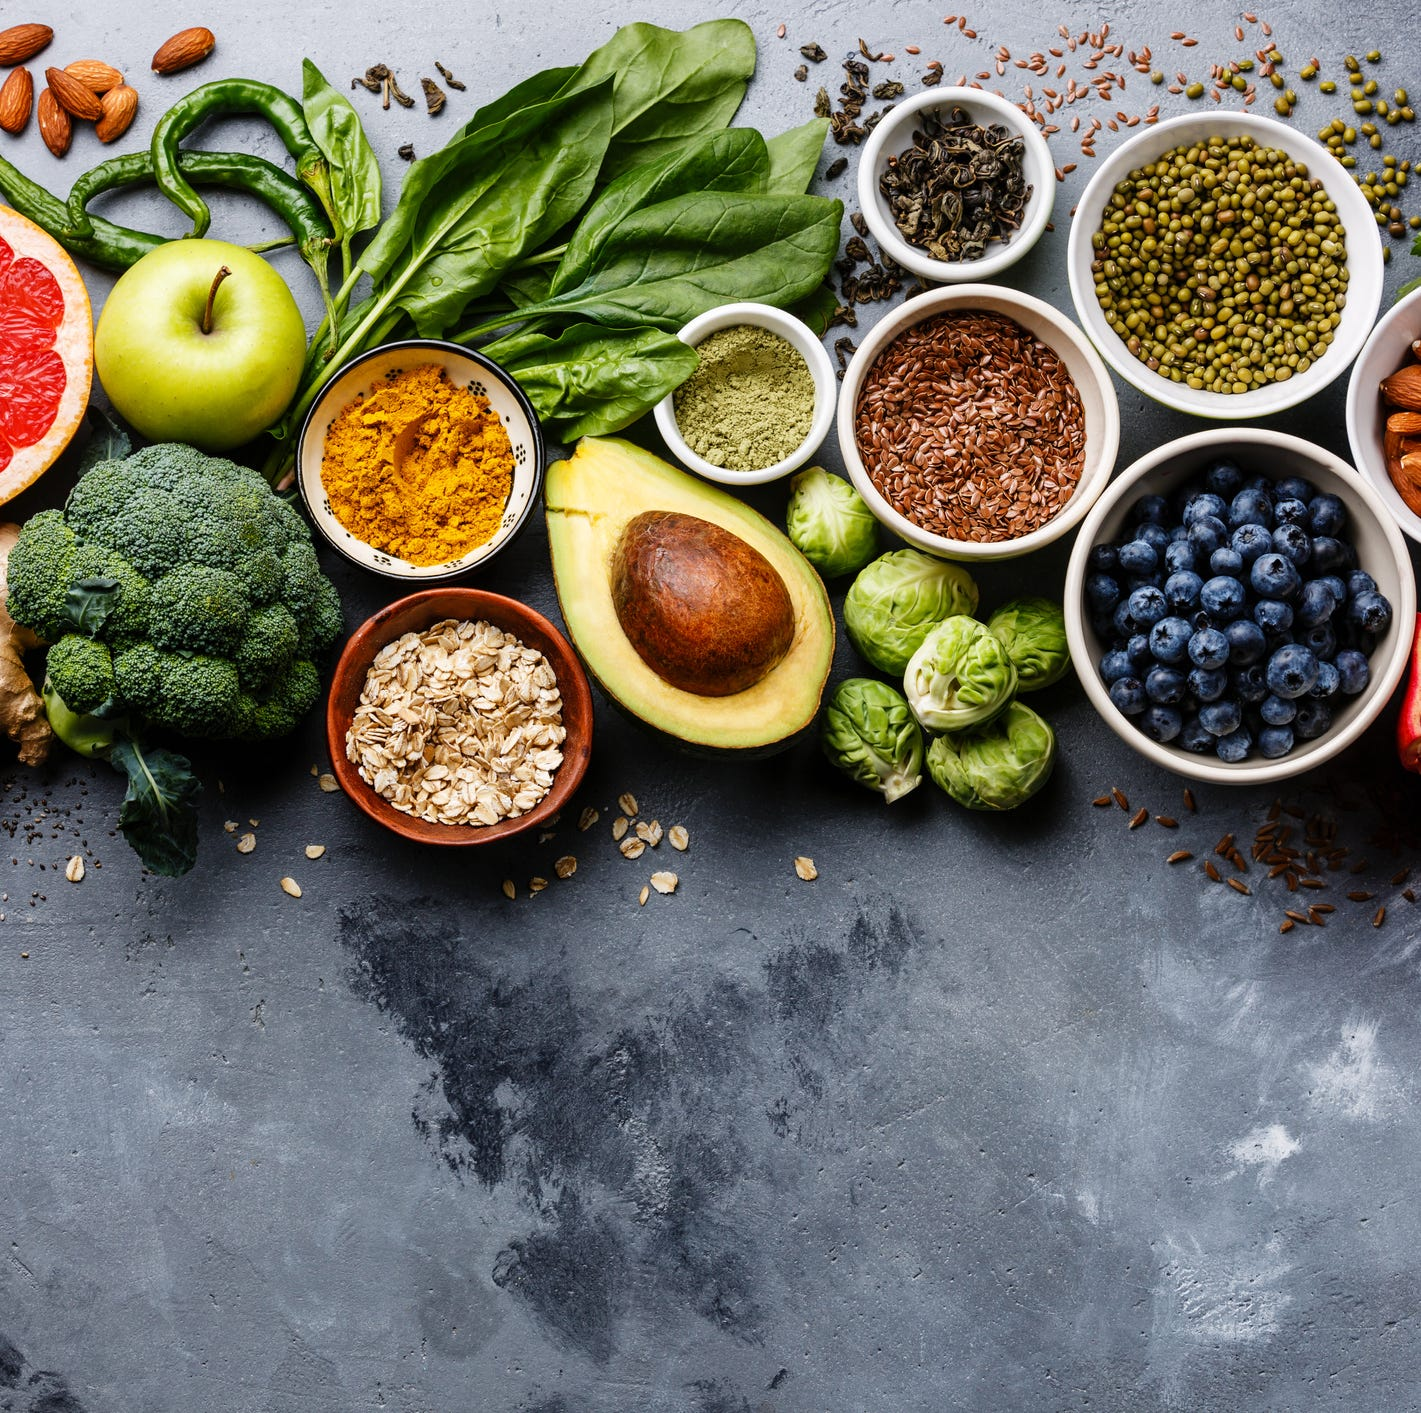 On the road? Keep your diet clean with a few proactive steps